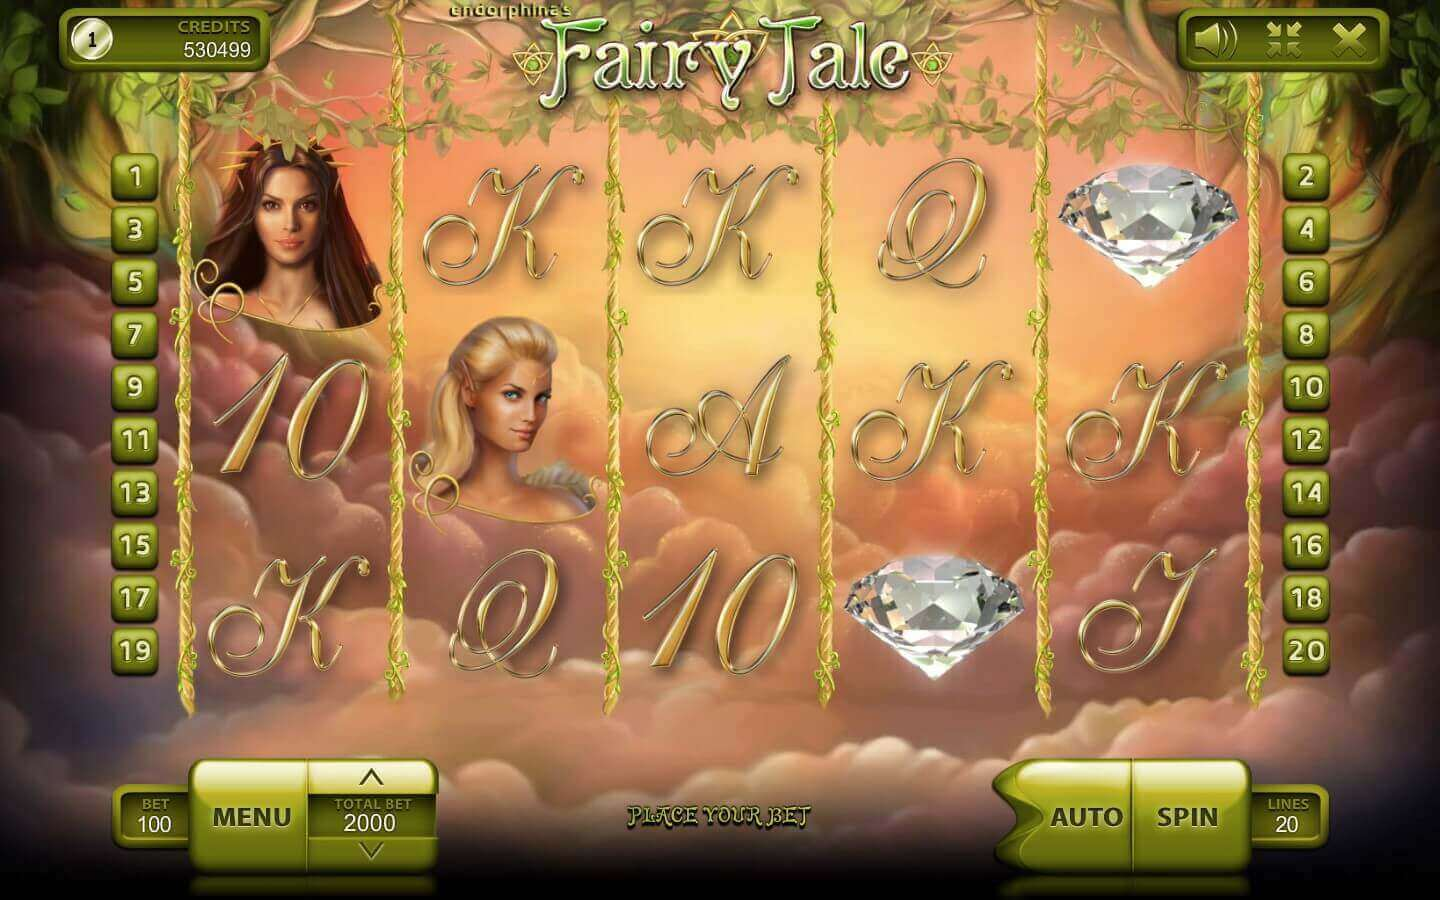 Fairy Tale - play demo slot machine